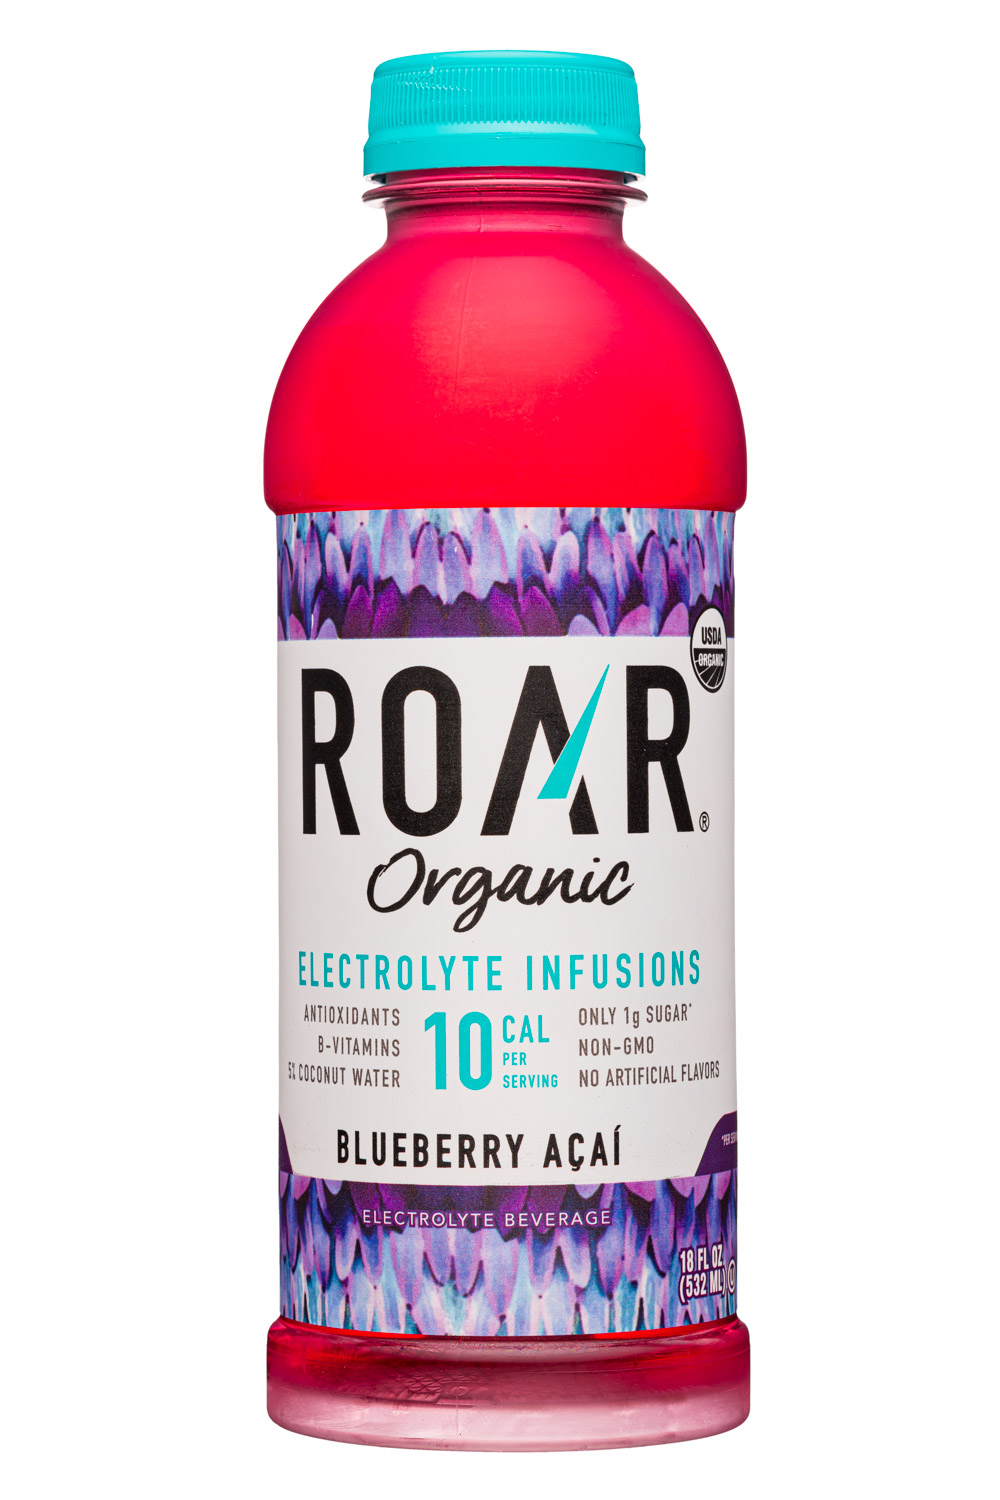 Blueberry Acai - Electrolyte Infusions (2020)